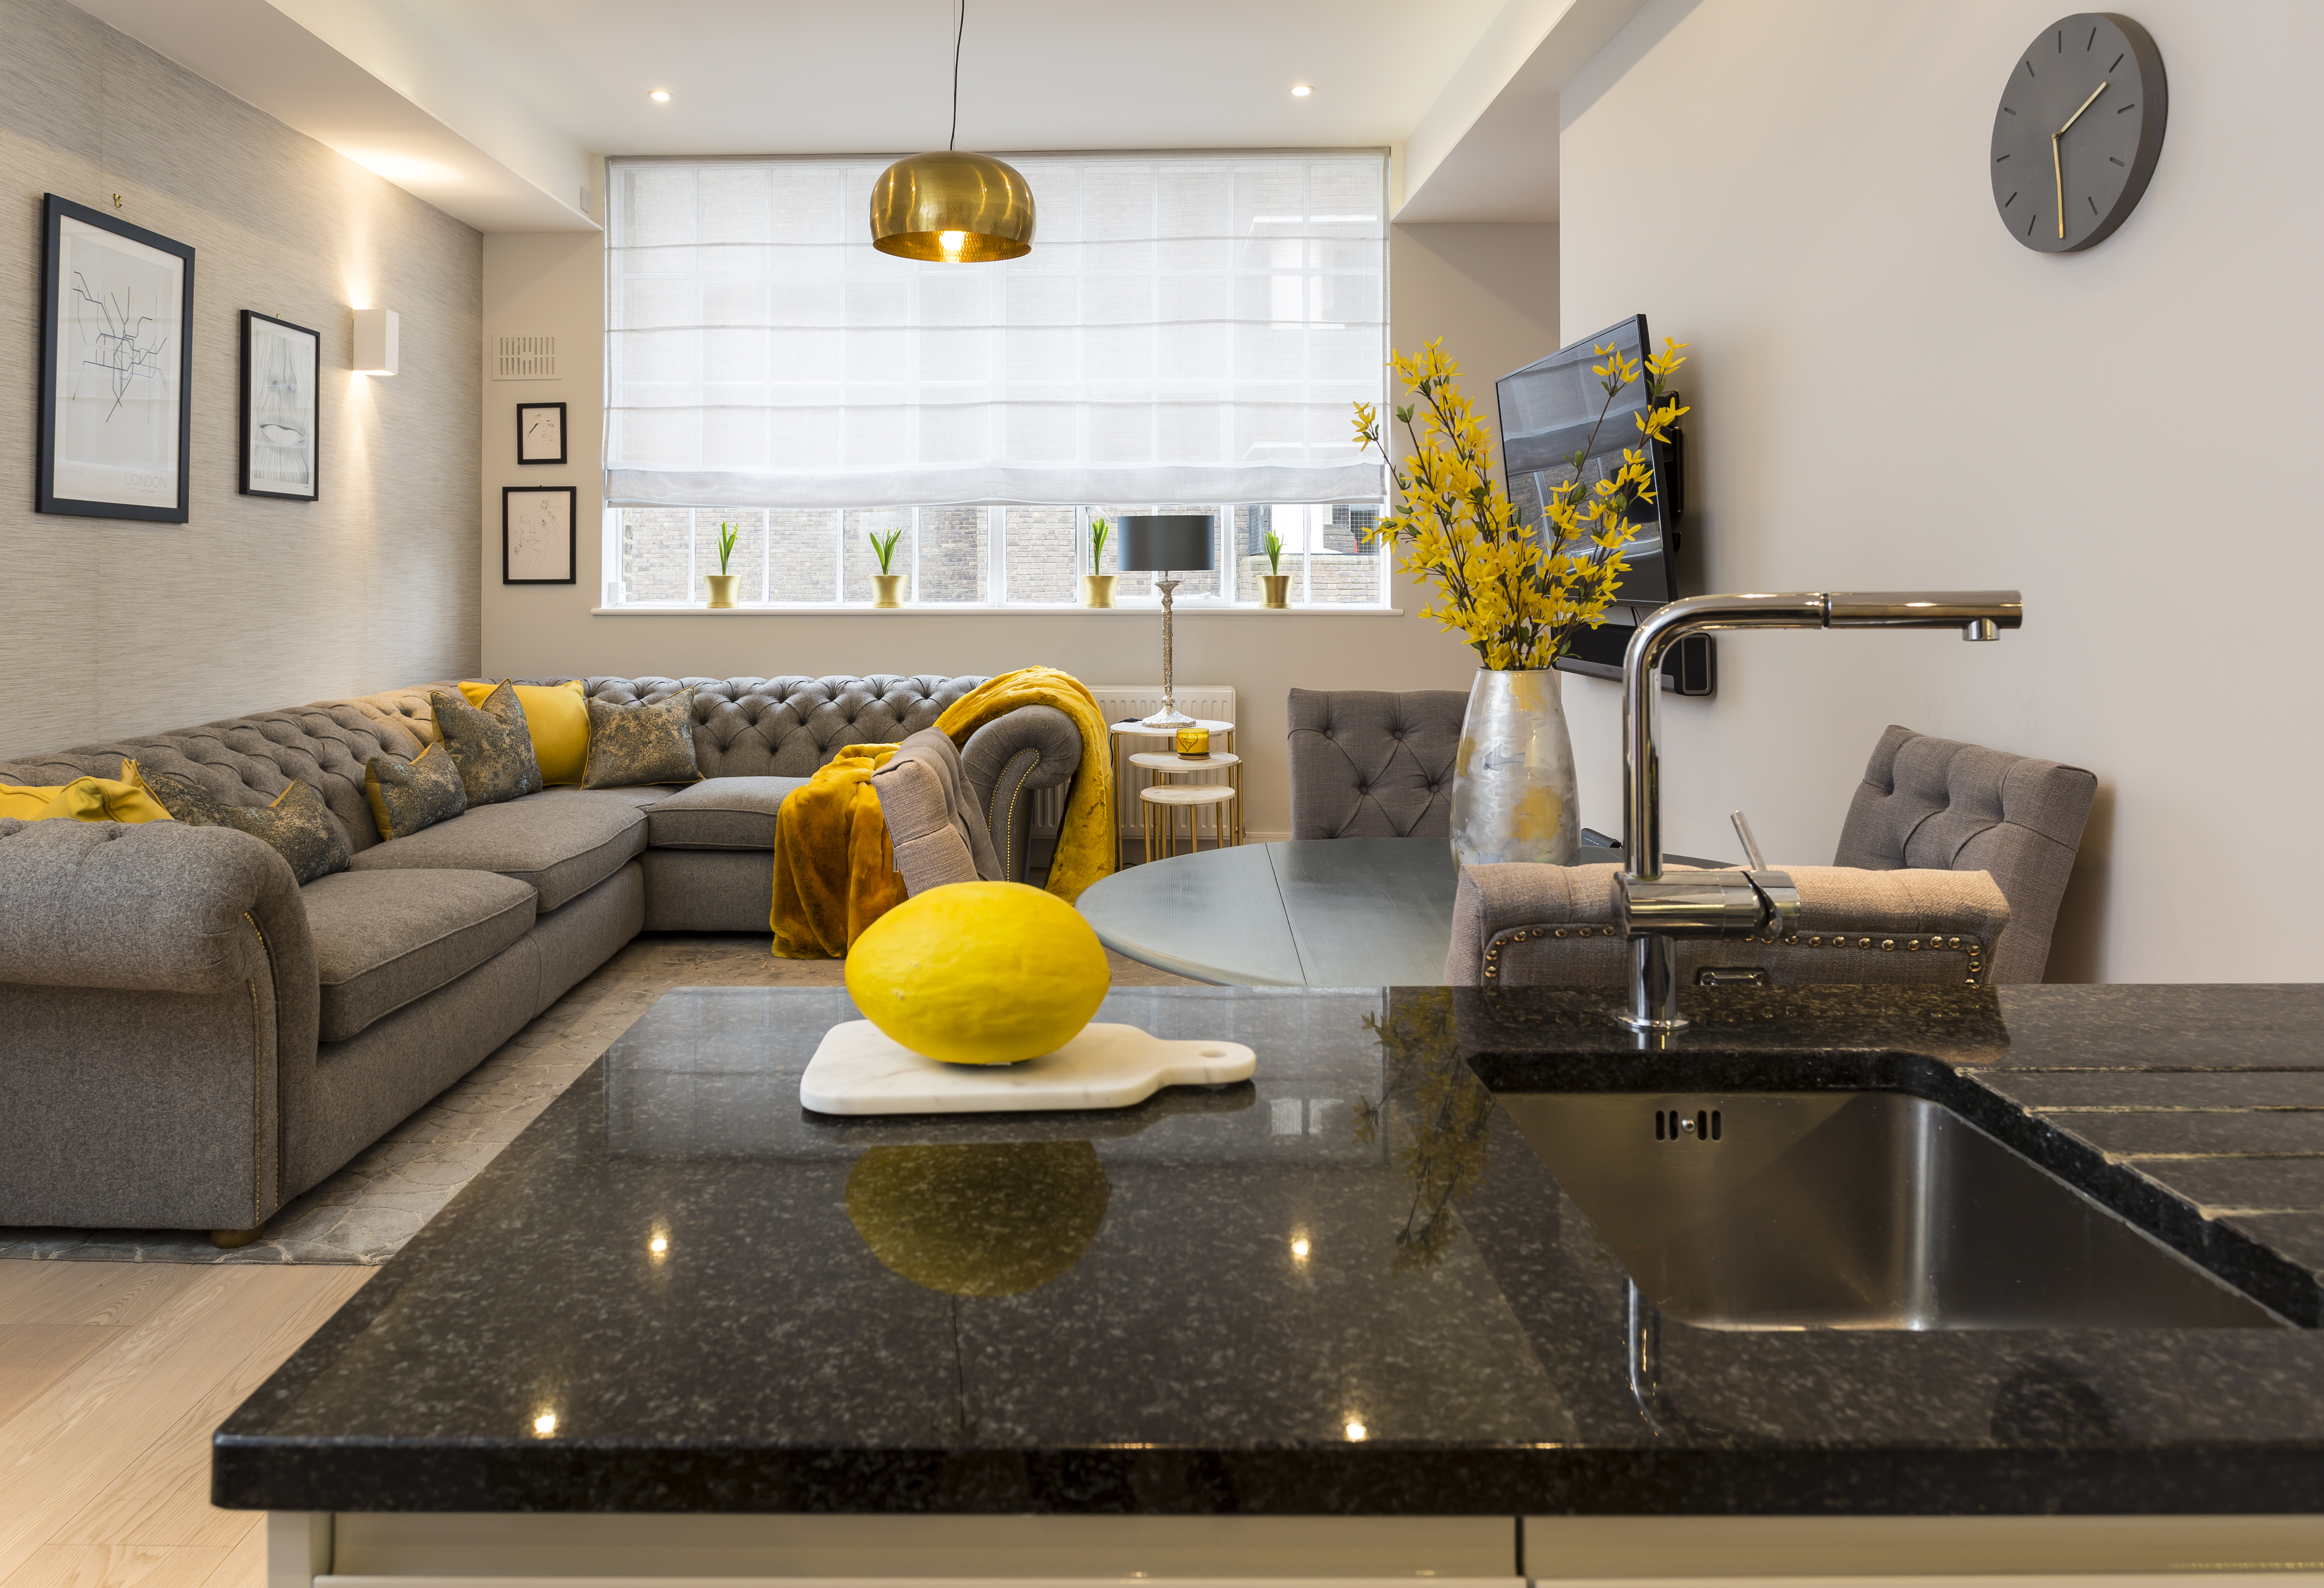 We Knew Exactly Where To Go To Find Affordable And Well Made Furniture To  Suit The Budget, And The Client Was Delighted With The Transformation.